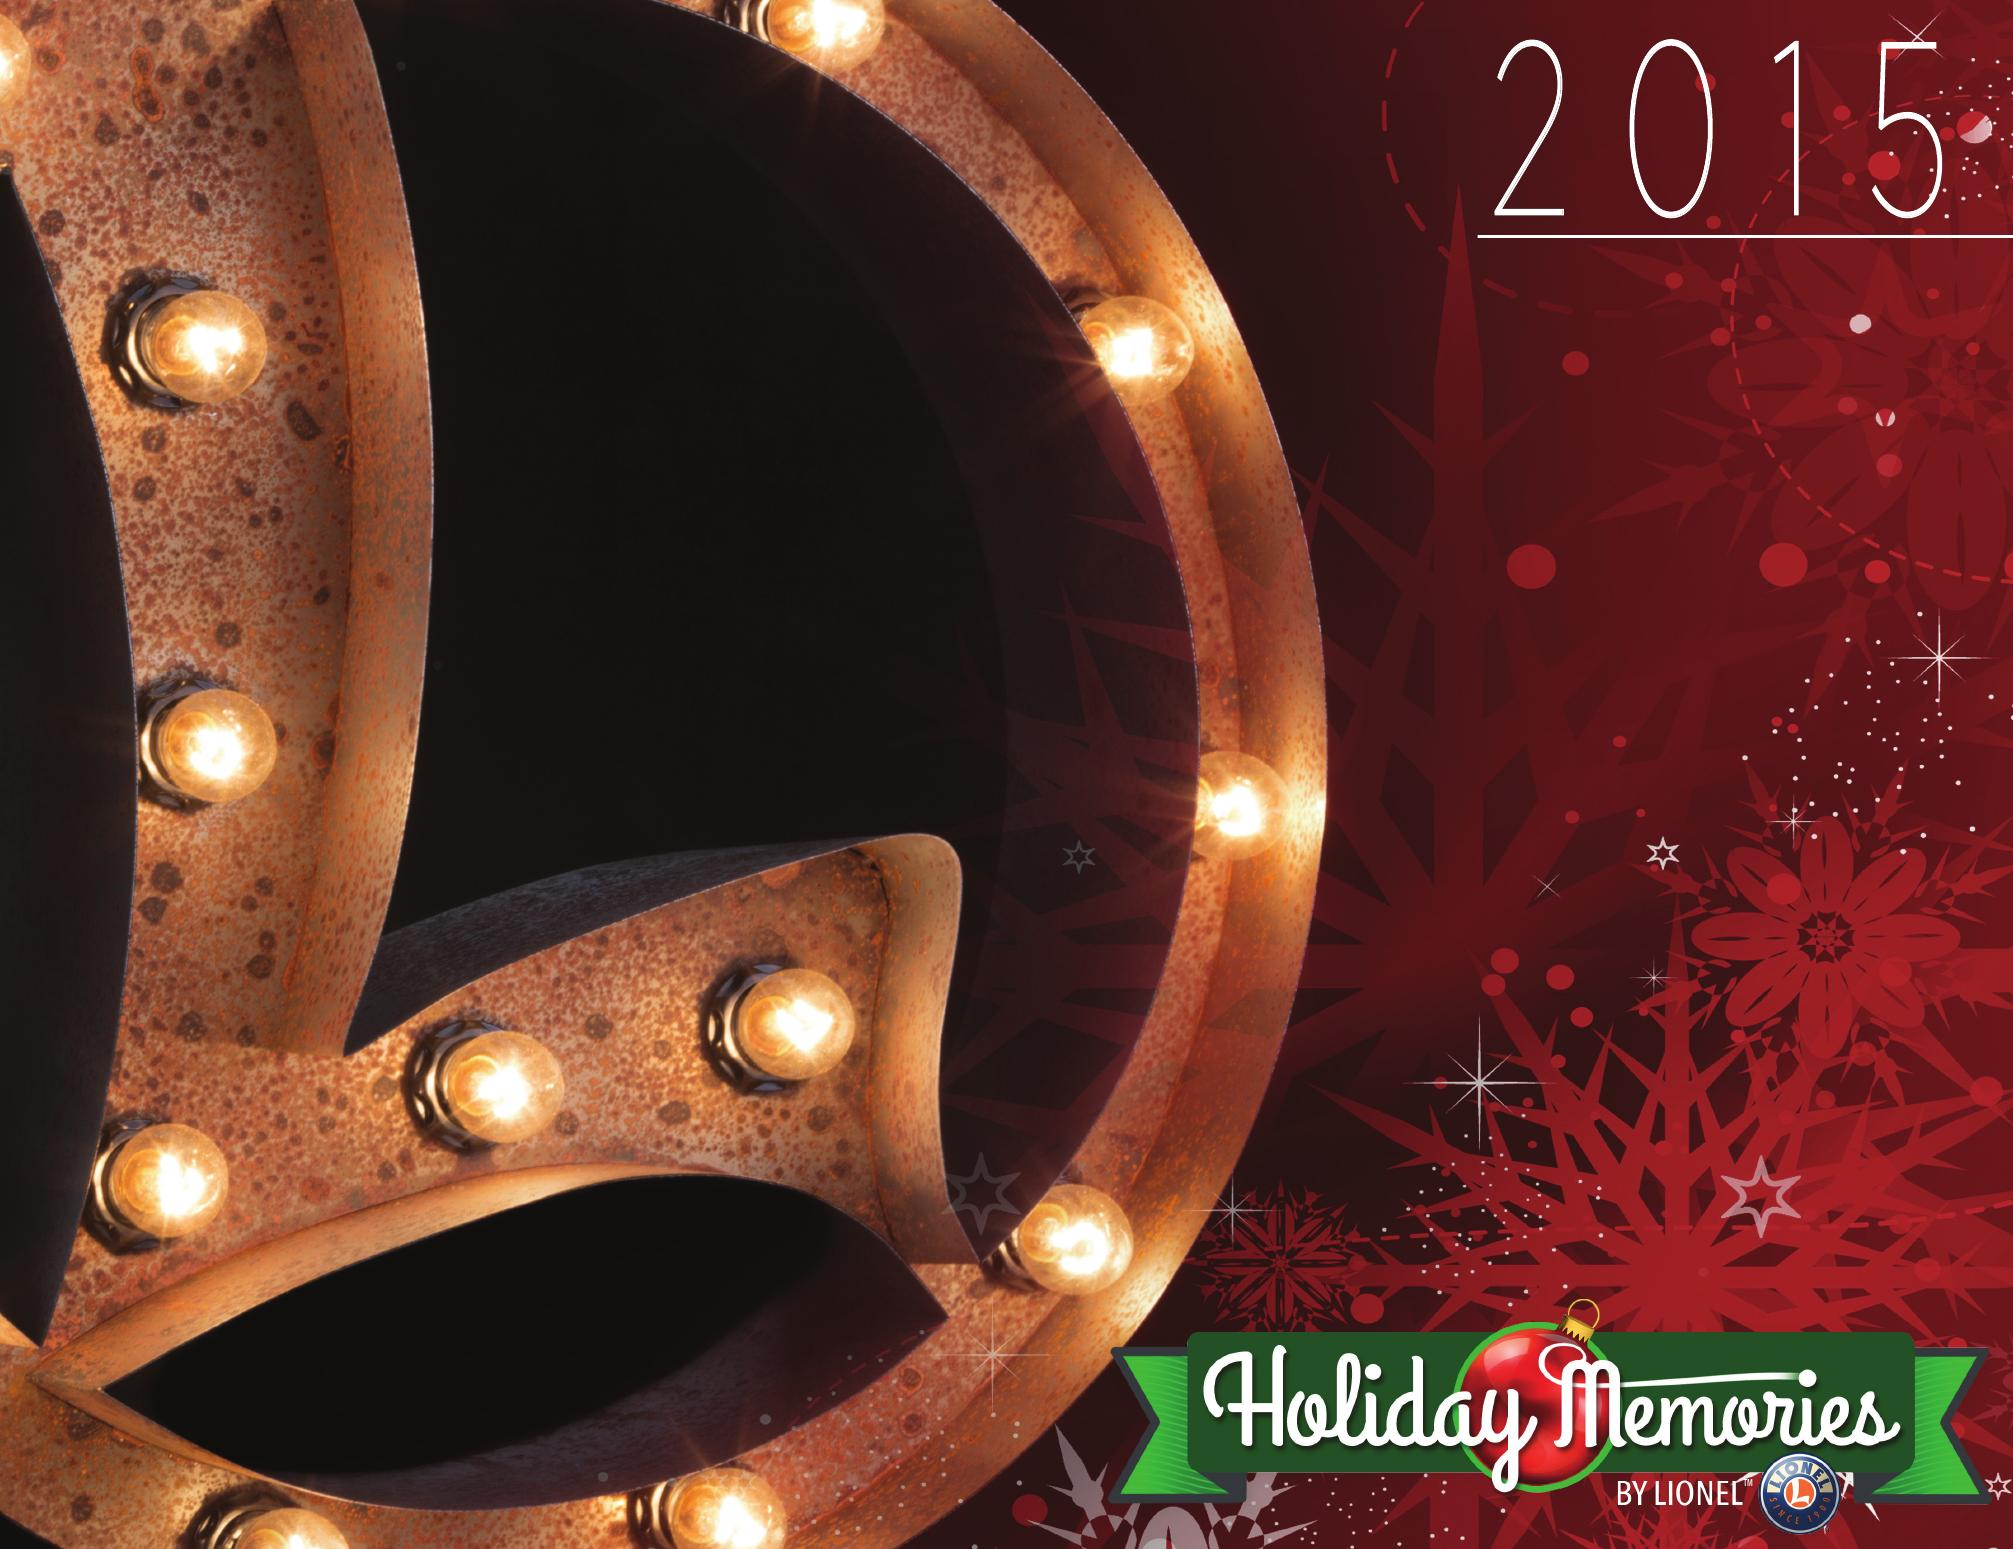 Lionel Catalogs - Holiday Memories 2015